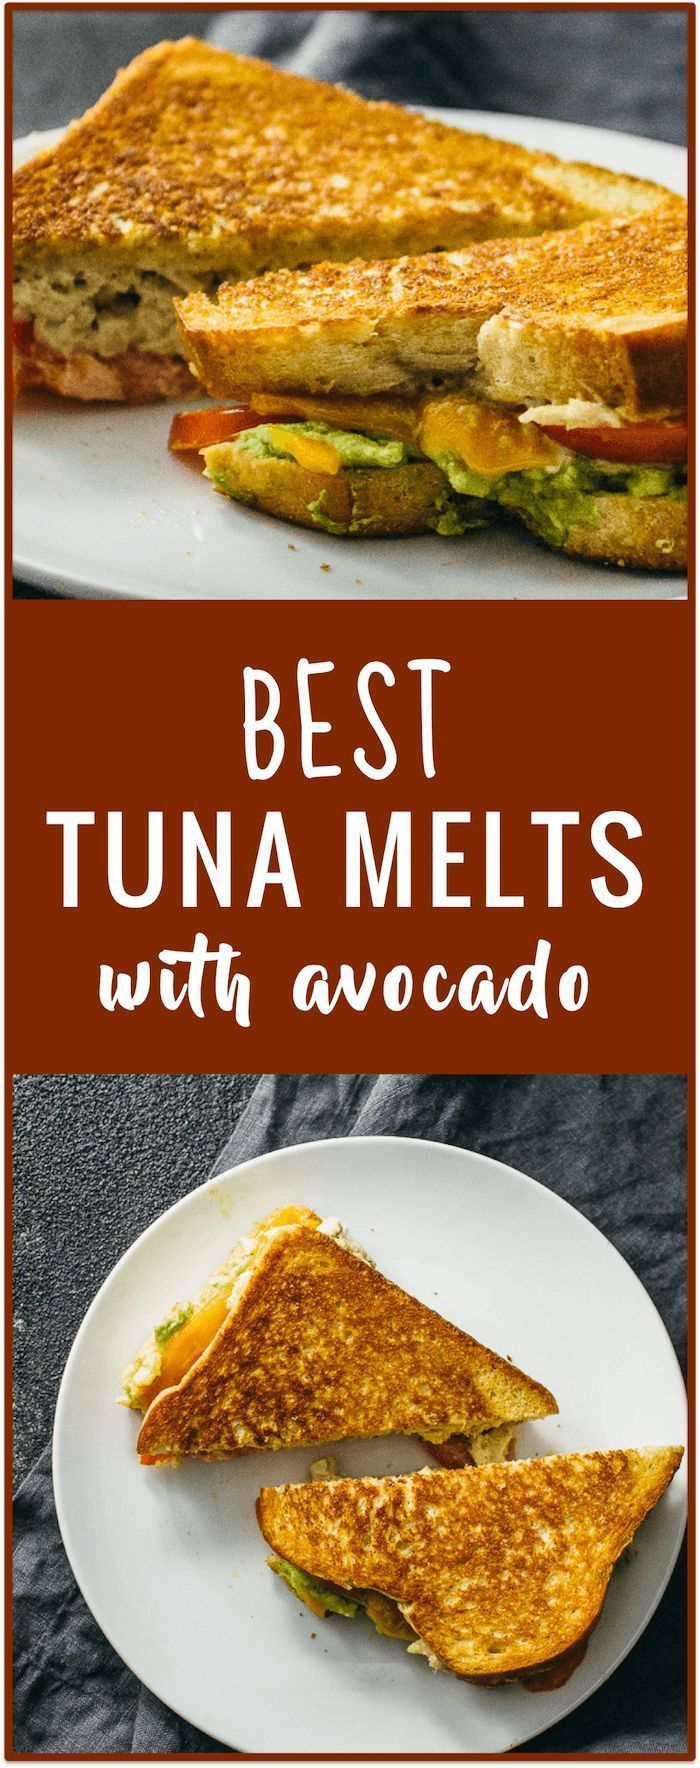 Try this tuna melt sandwich recipe with cheddar cheese, tuna, tomato, and mashed avocados. The bread is buttered and toasted on a skillet to achieve a very crispy and golden-brown exterior.